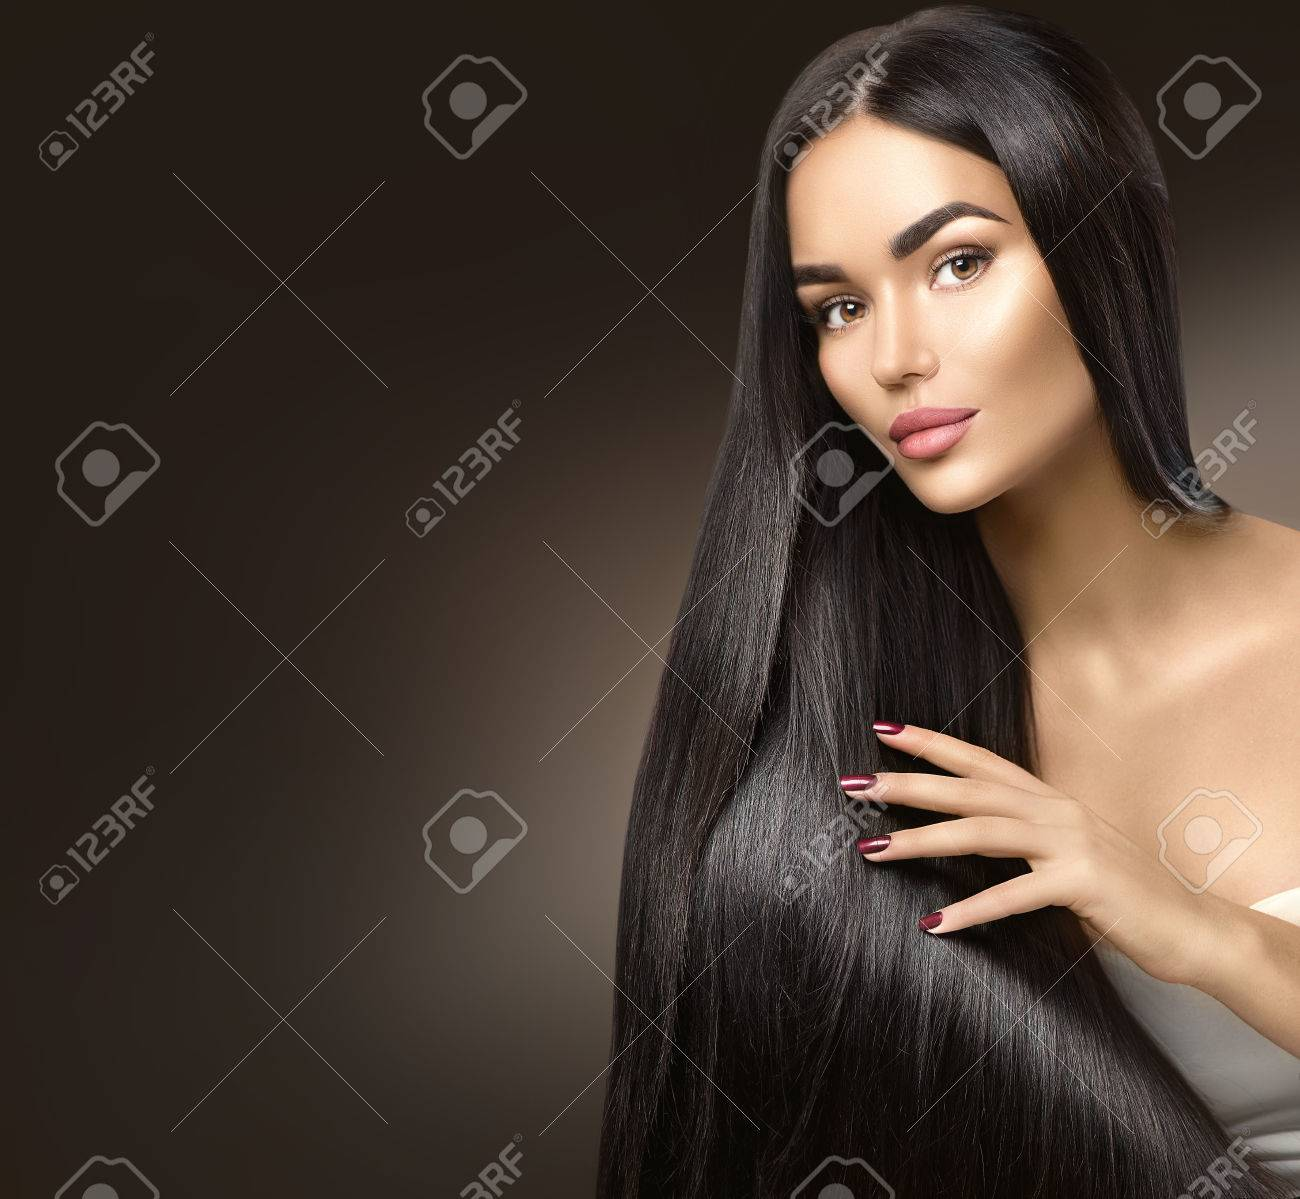 Beautiful long hair. Beauty model girl touching healthy hair Banque d'images - 67921051